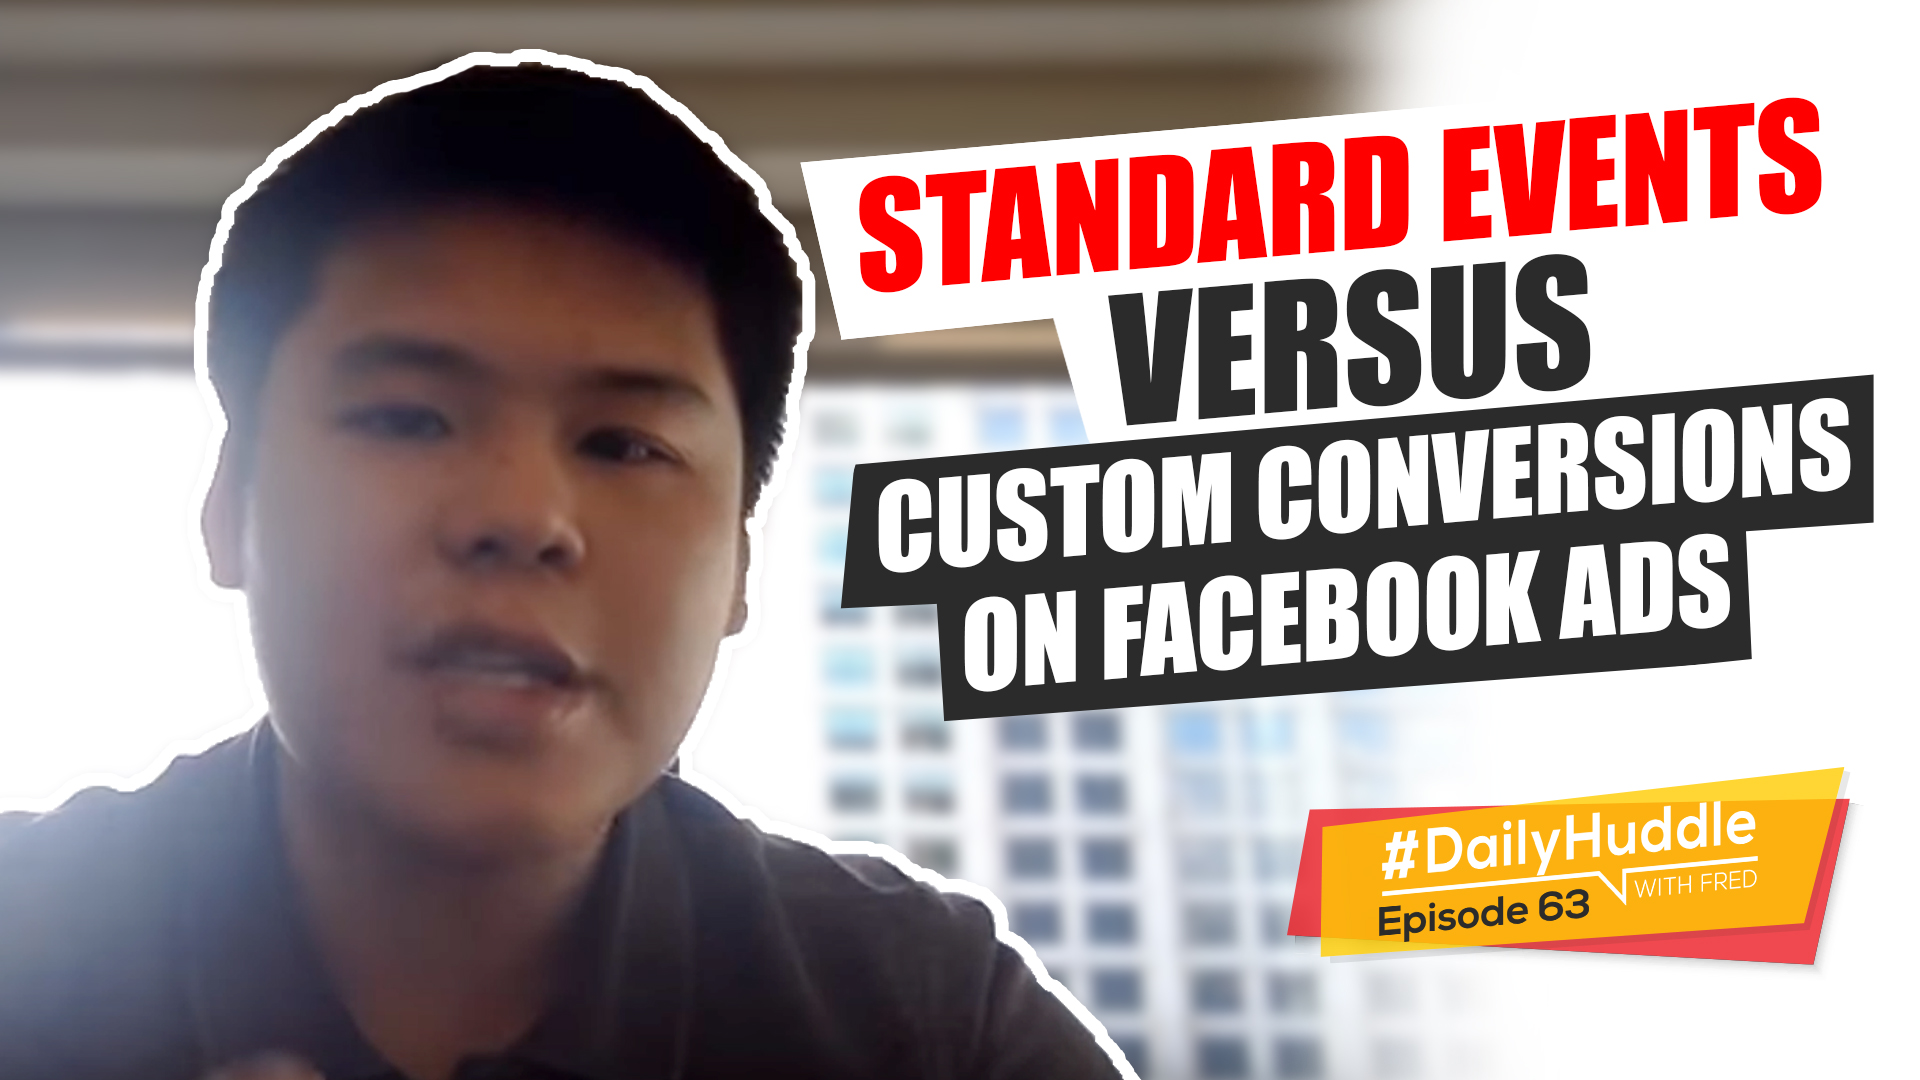 Ep 63 | Standard Events Versus Custom Conversions On Facebook Ads